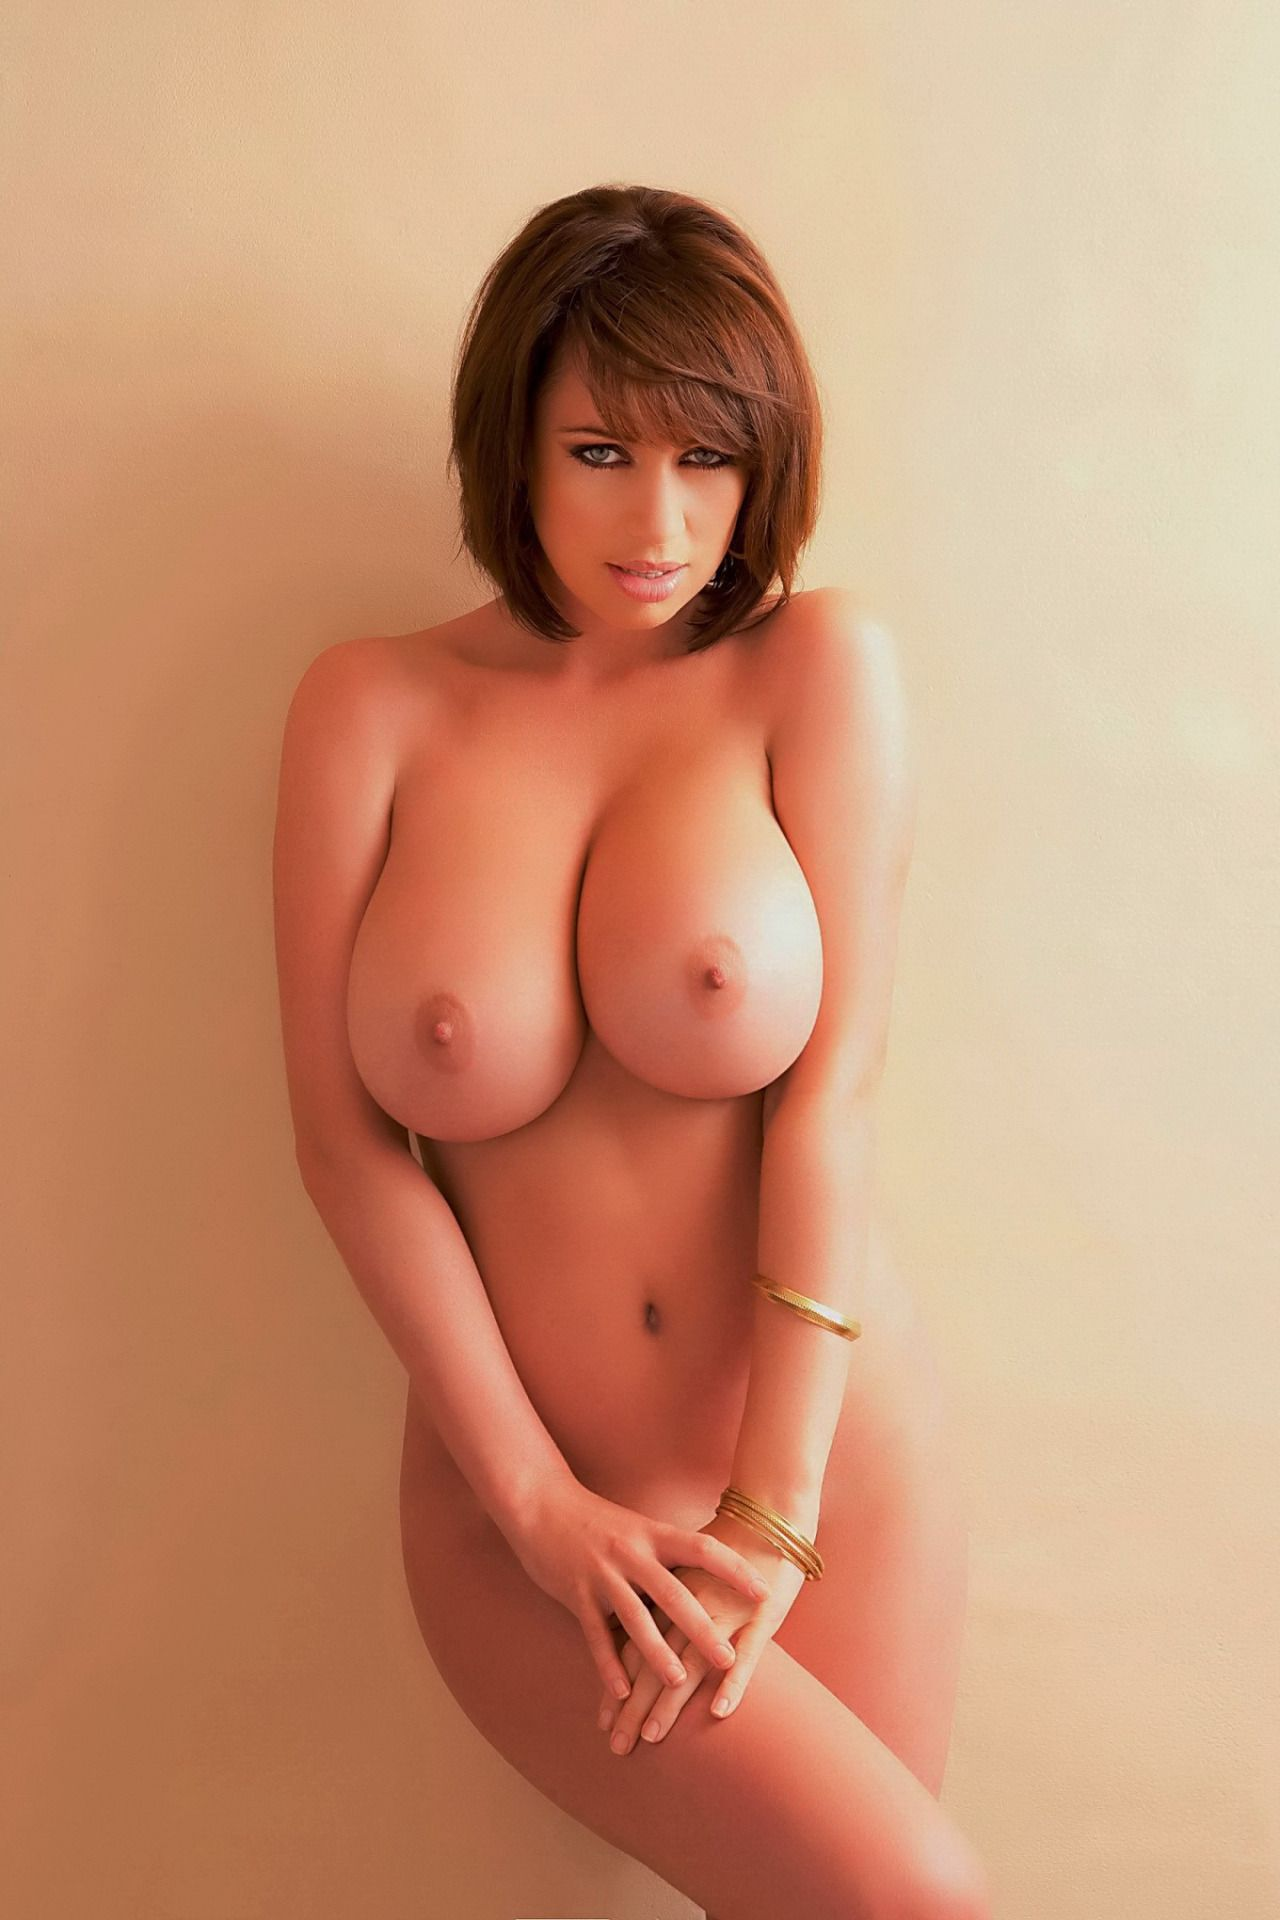 Boobs Shorthaired big brunette with